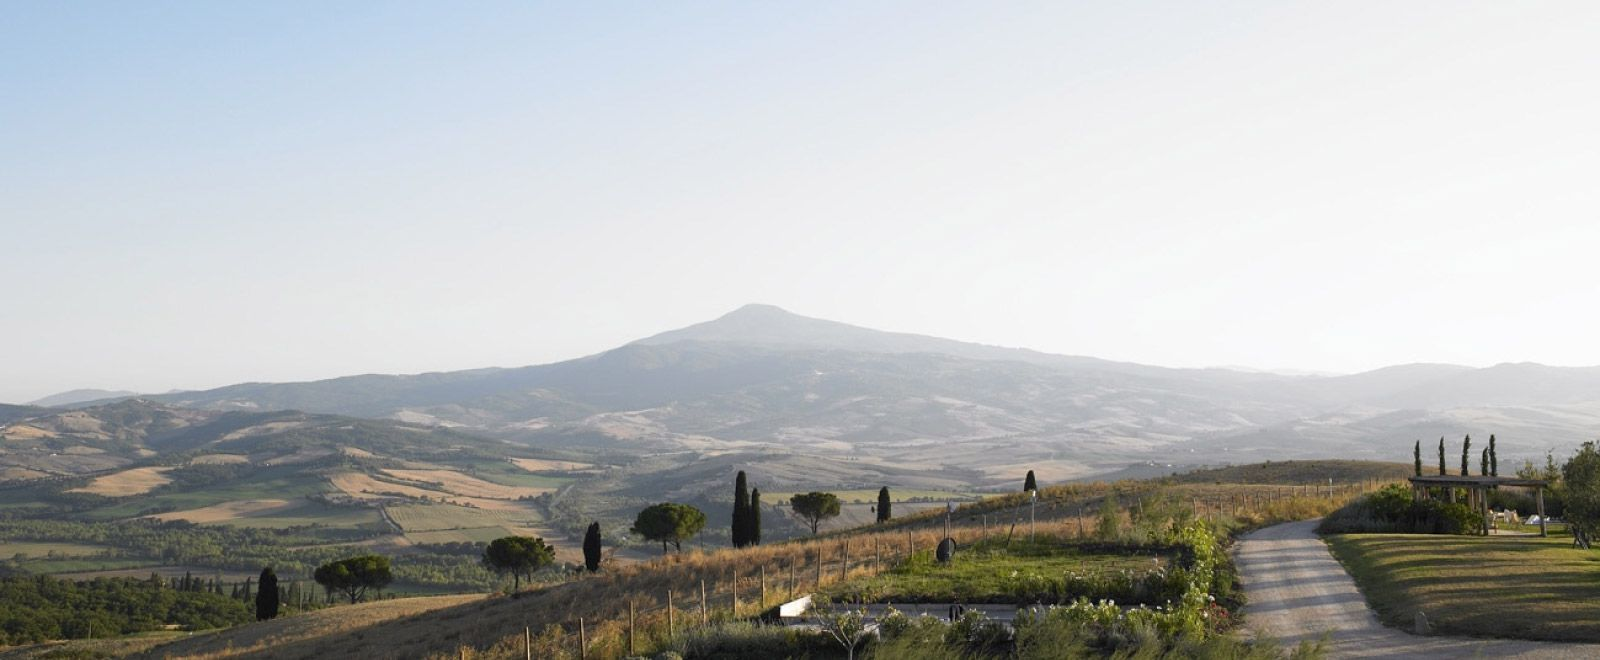 White Line Hotels - Boutique Hotels in Tuscany, Italy for dreamers and wanderers